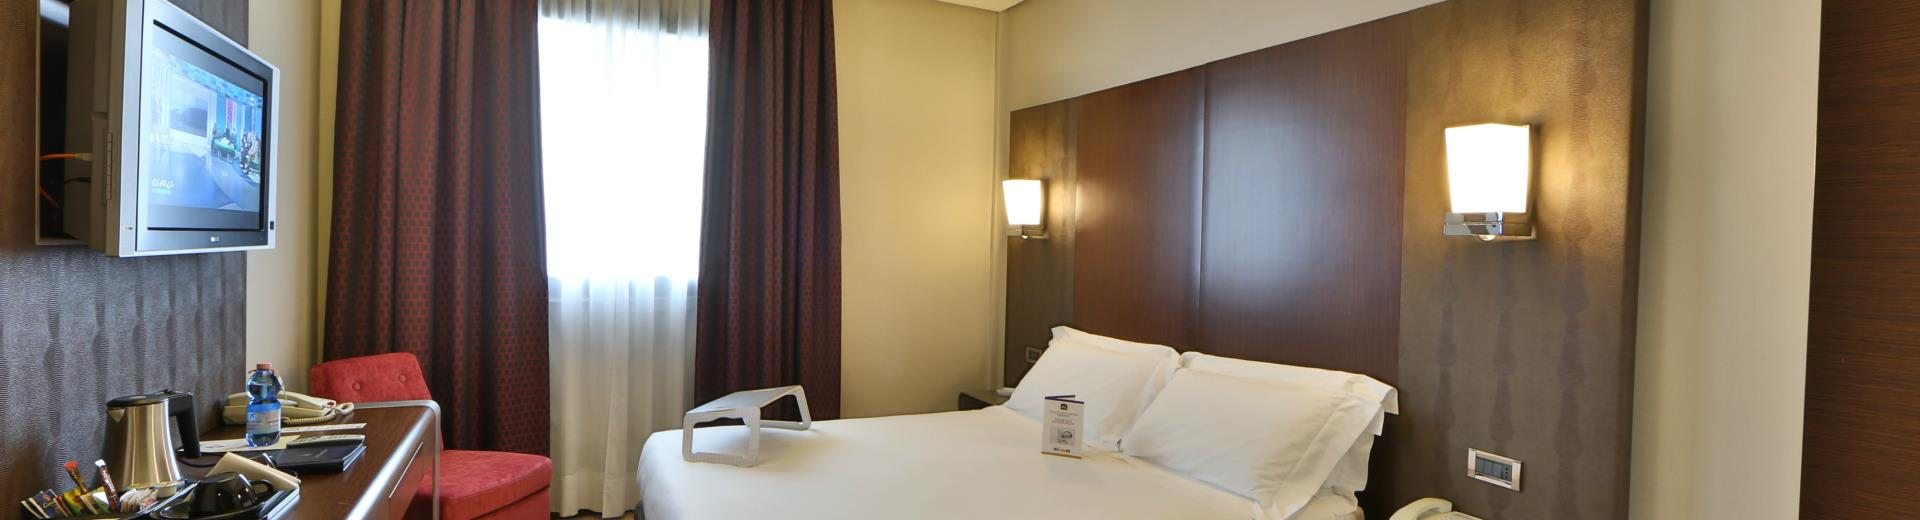 BW room Hotel Goldenmile Milan